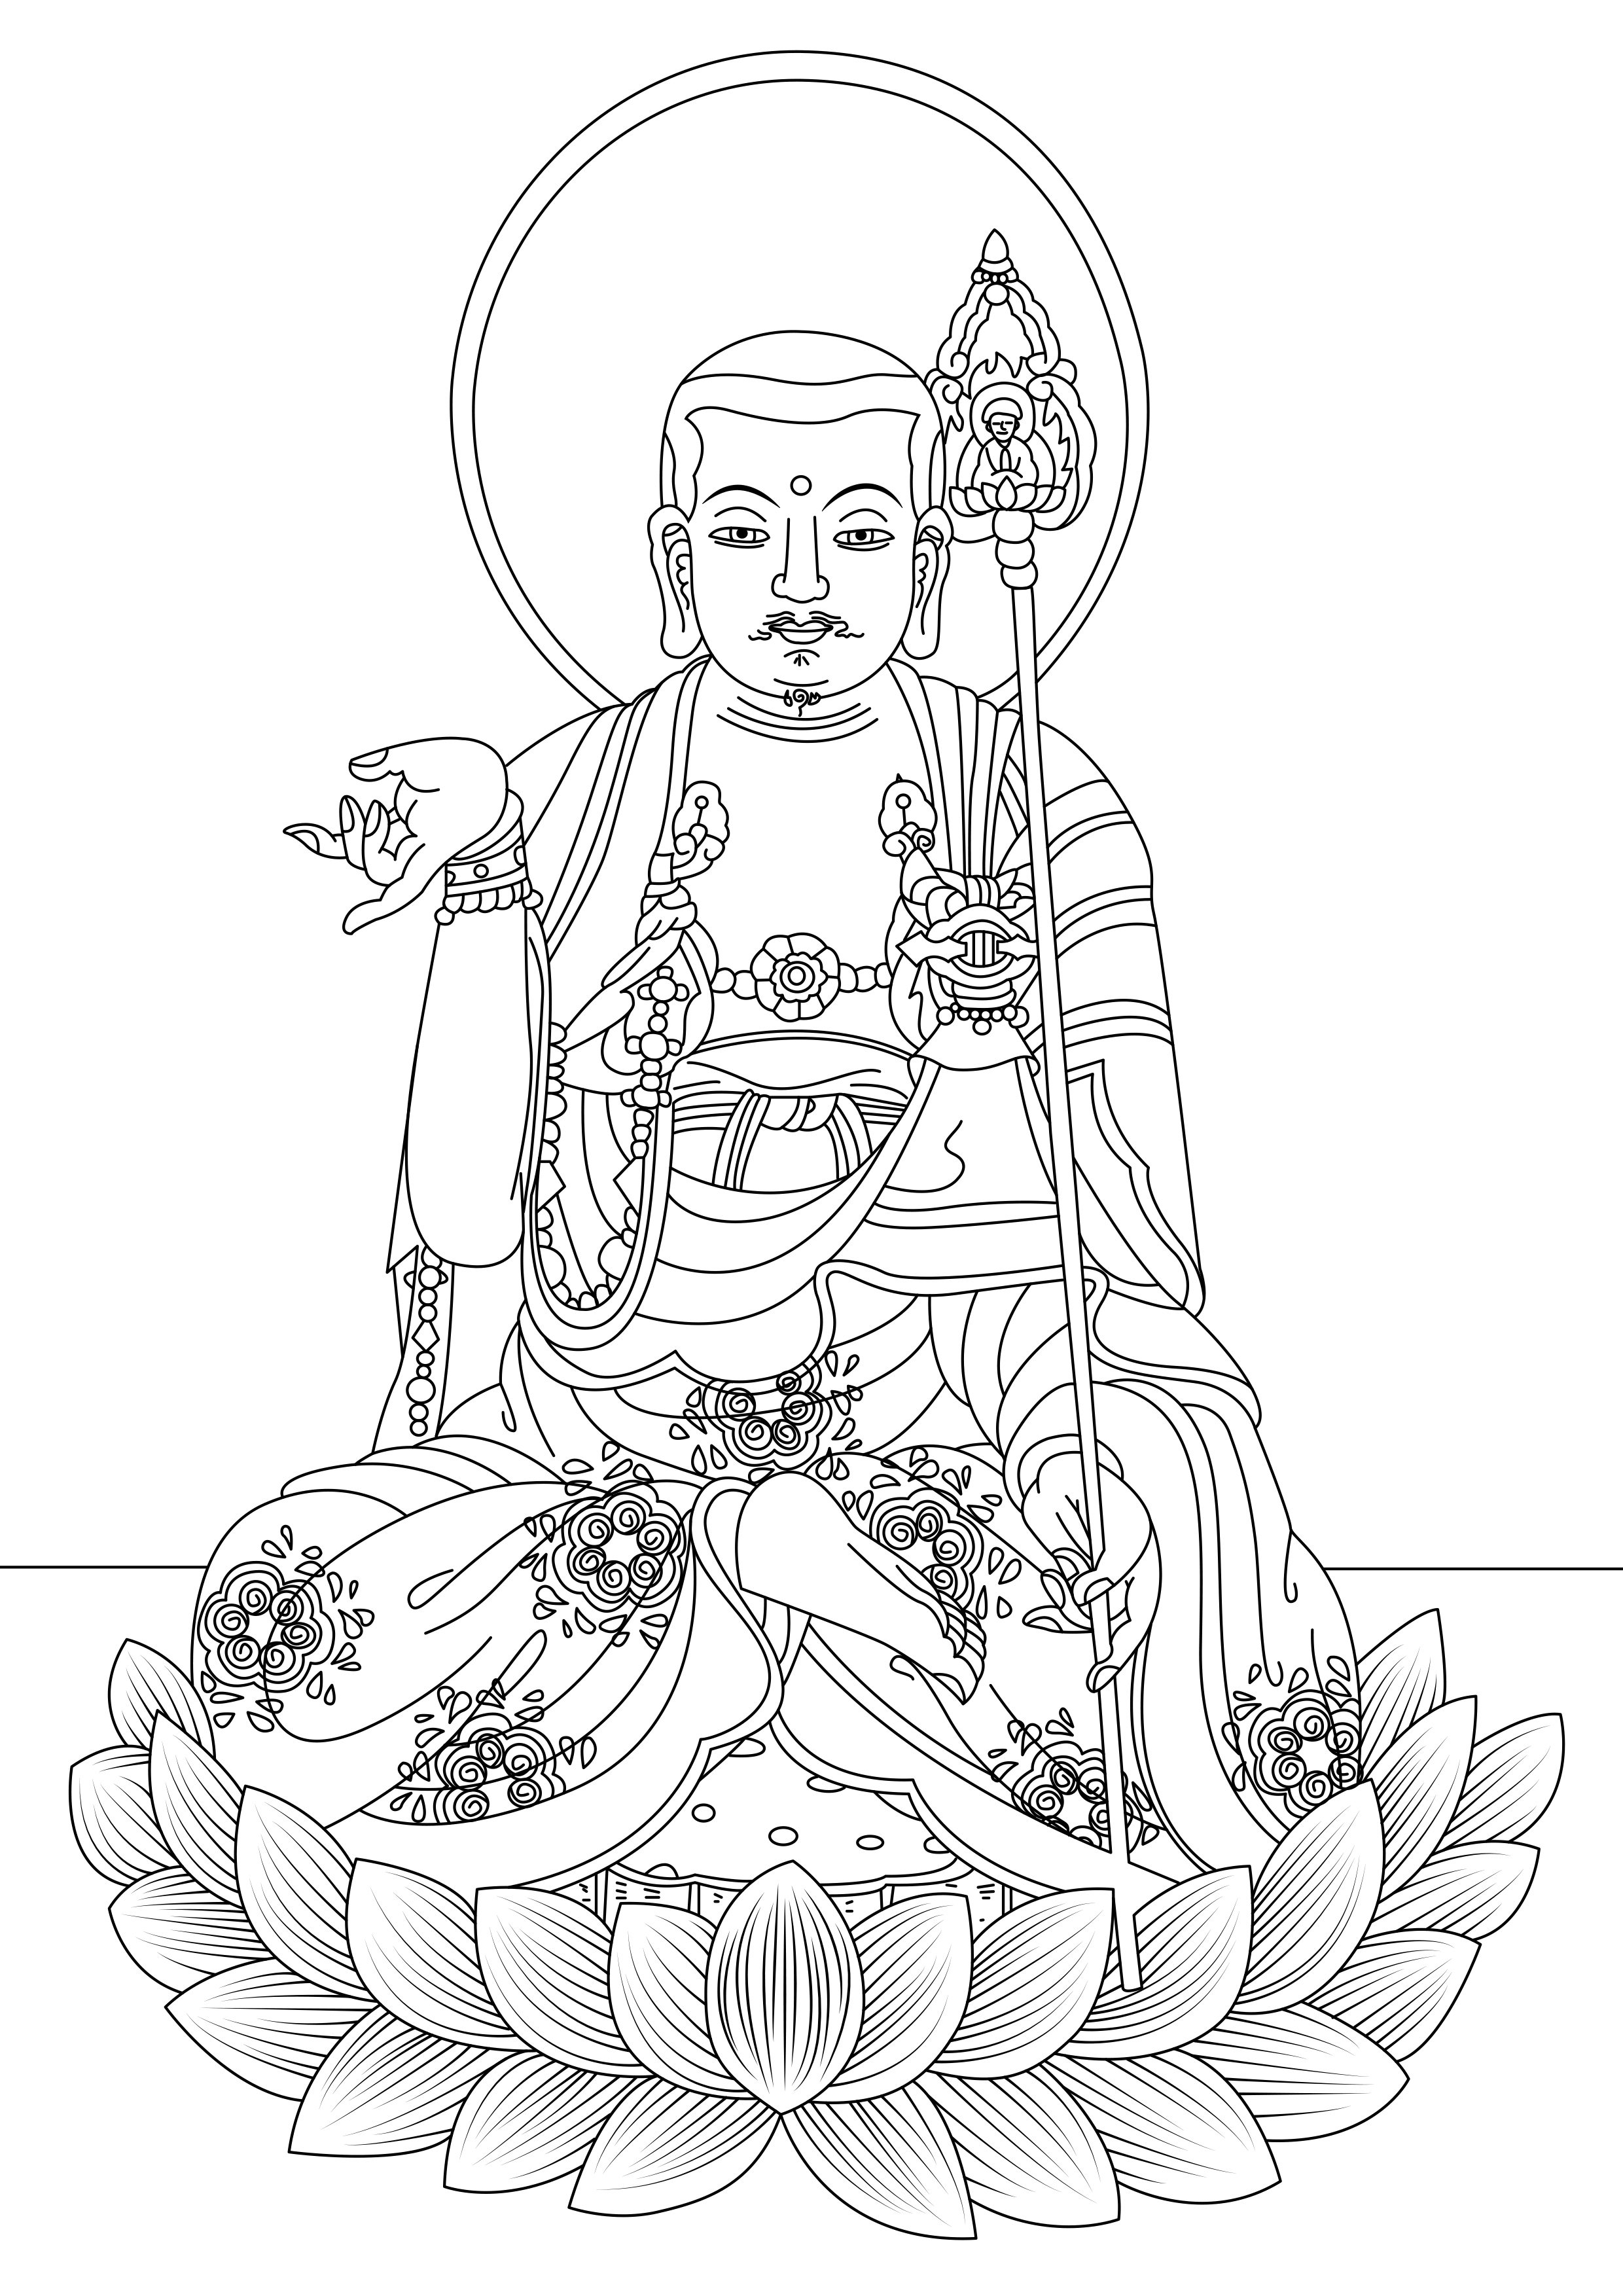 coloring page created from a painting by a south korean artist from the gallery